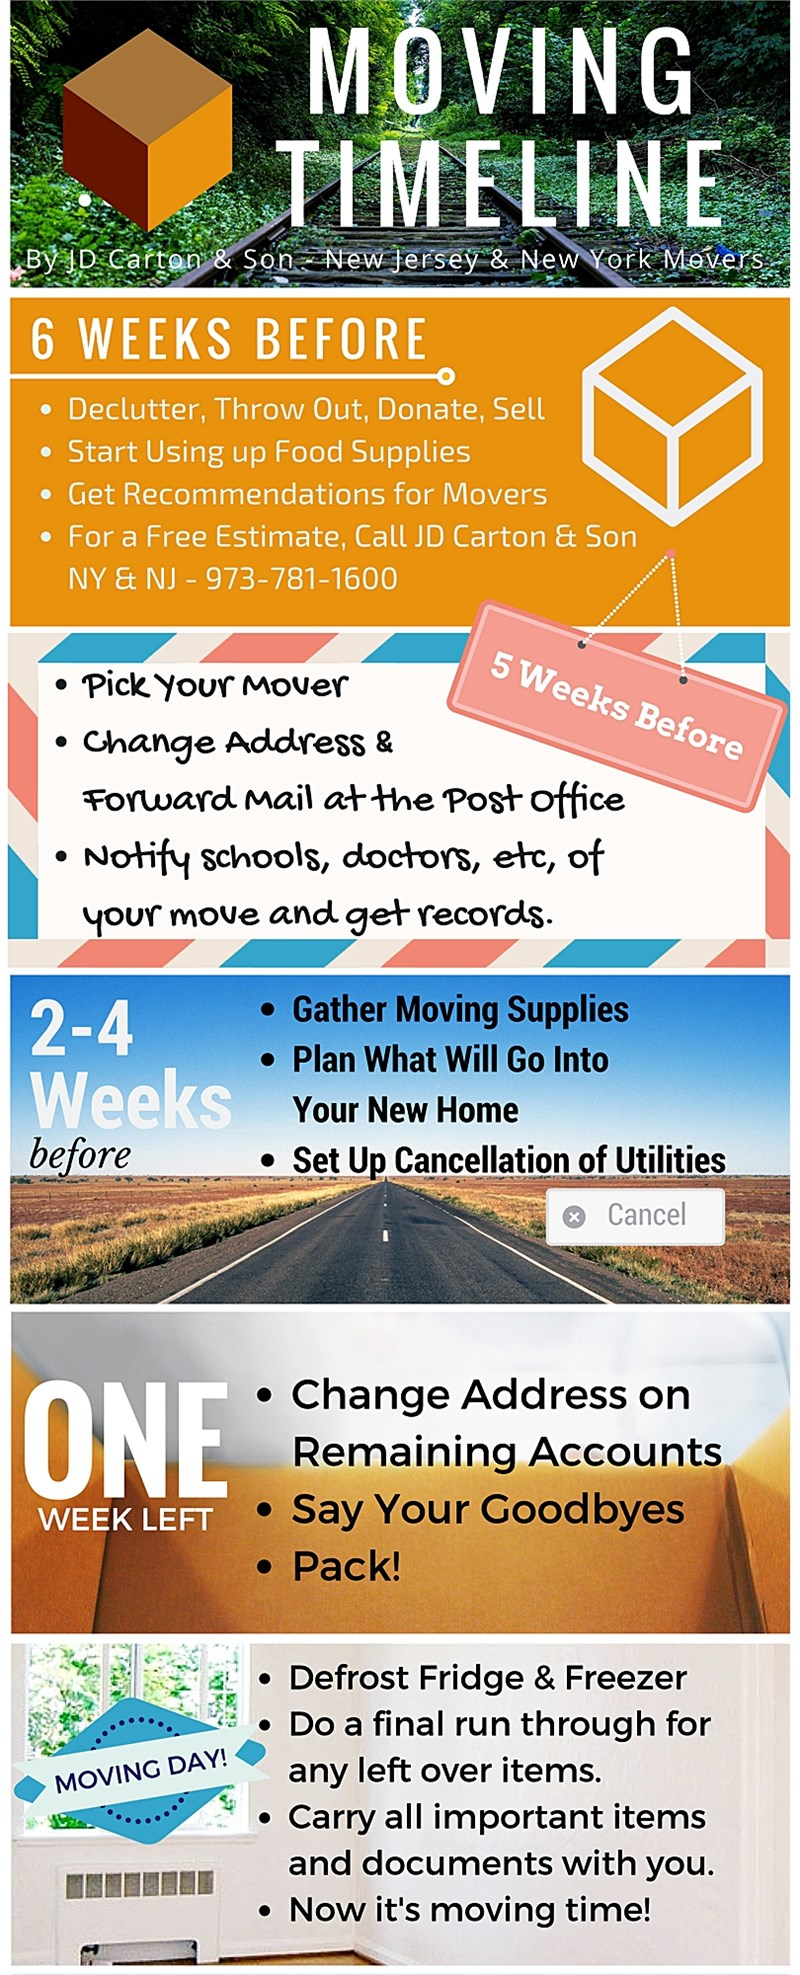 Moving Timeline Infographic - New Jersey Movers